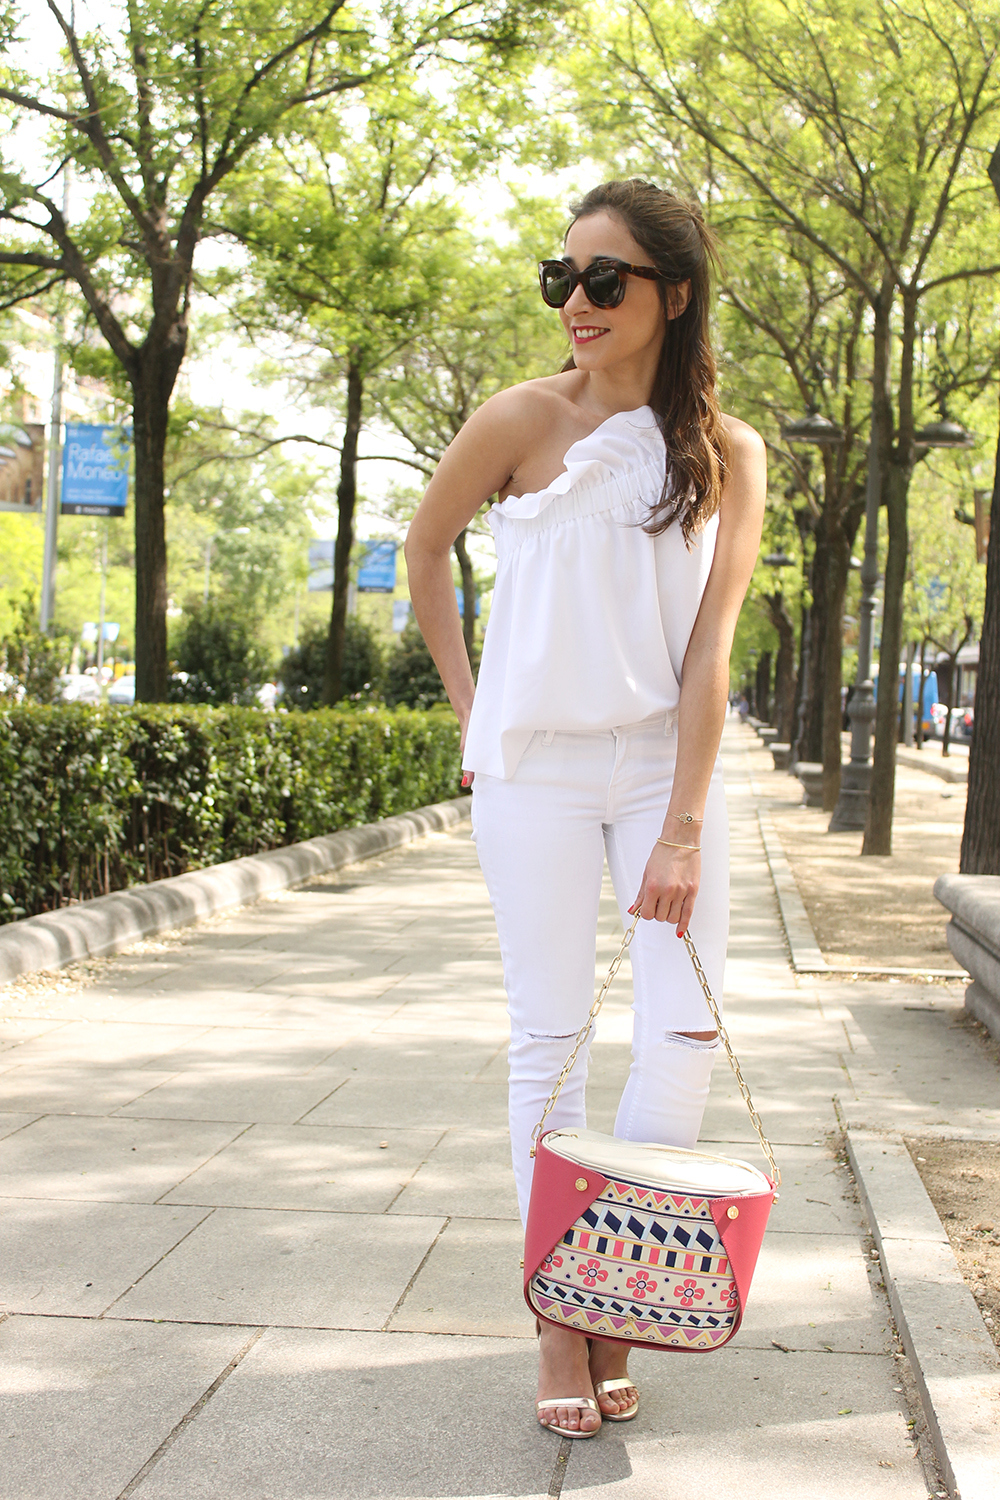 white outfit ripped jeans asymmetrical top pamapamar céline sunnies massimo dutti sandals fashion style04